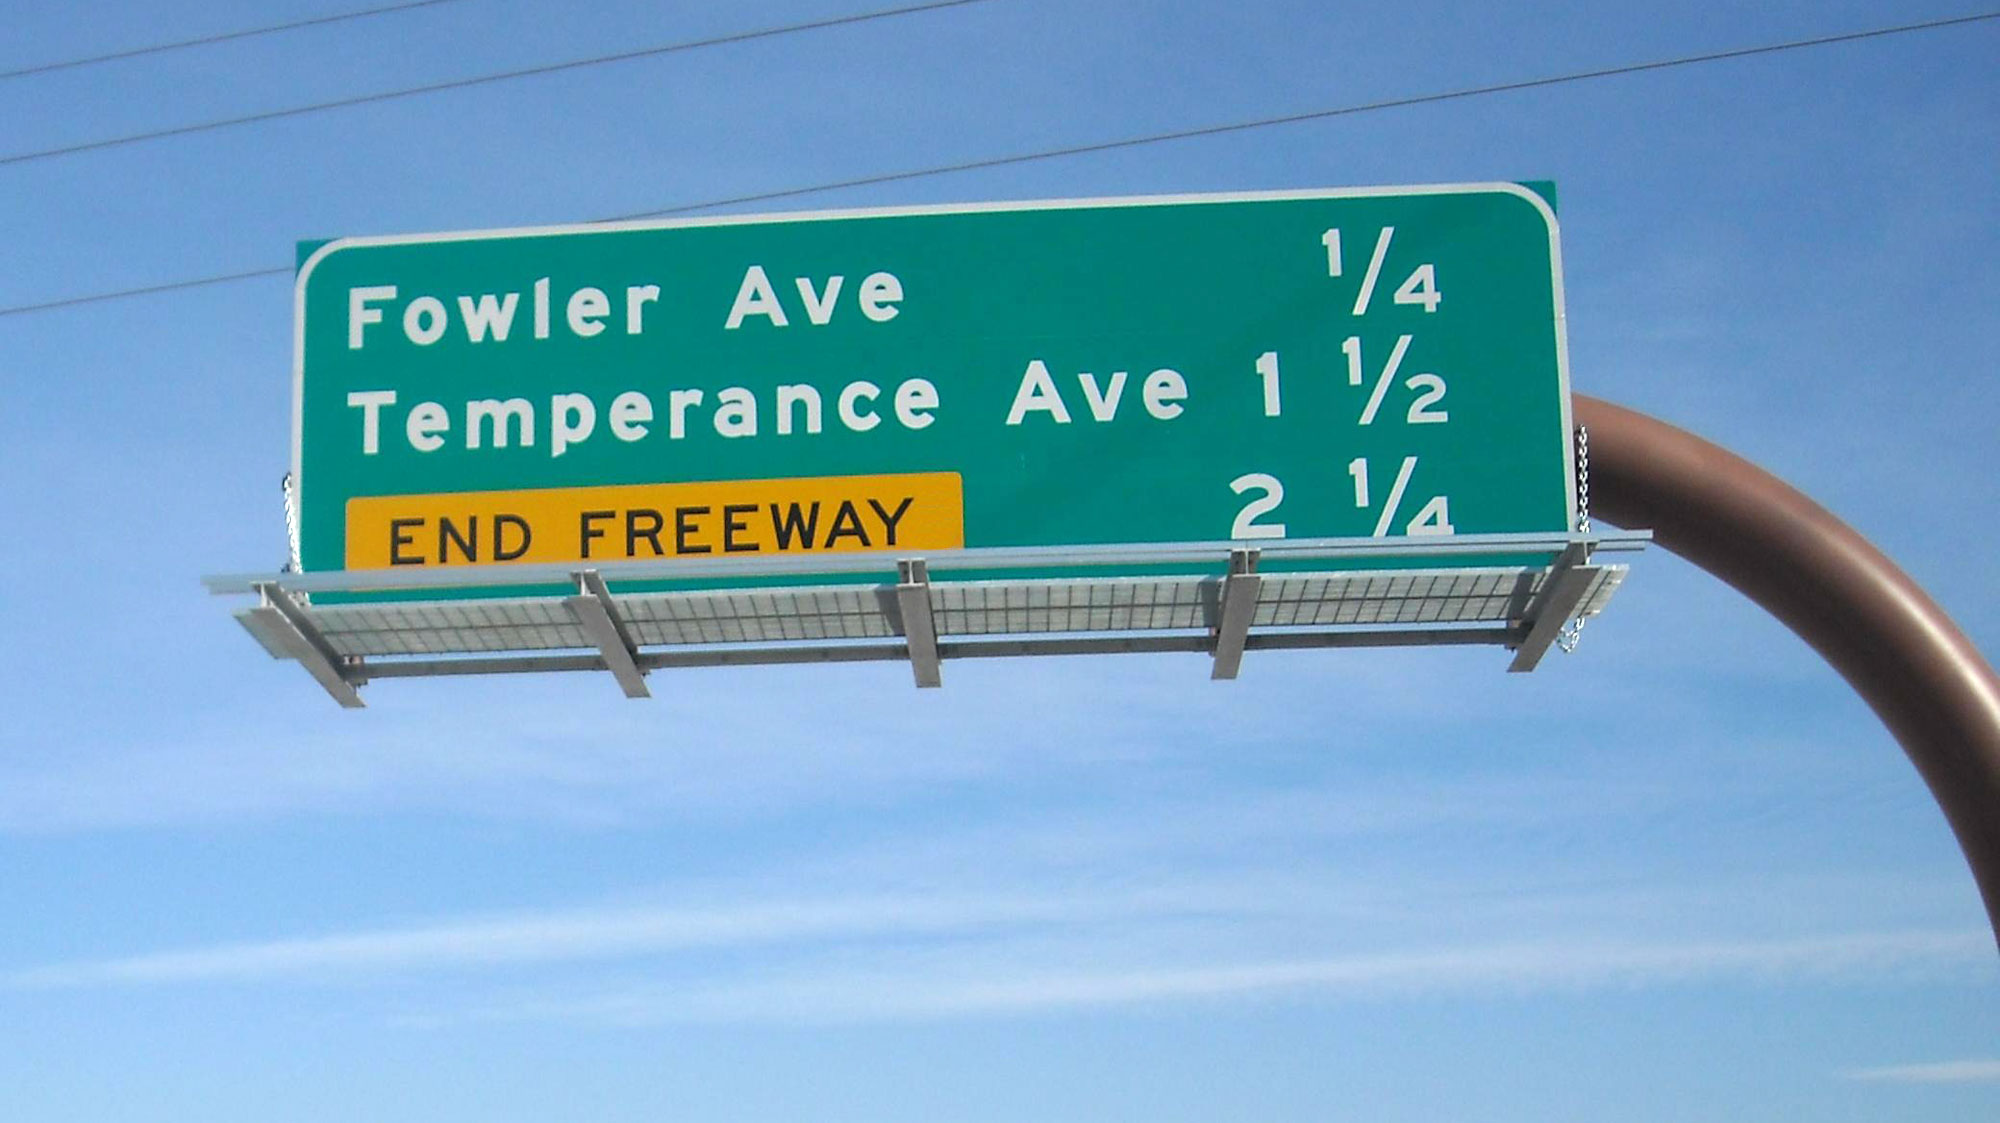 how far apart are the freeway exits